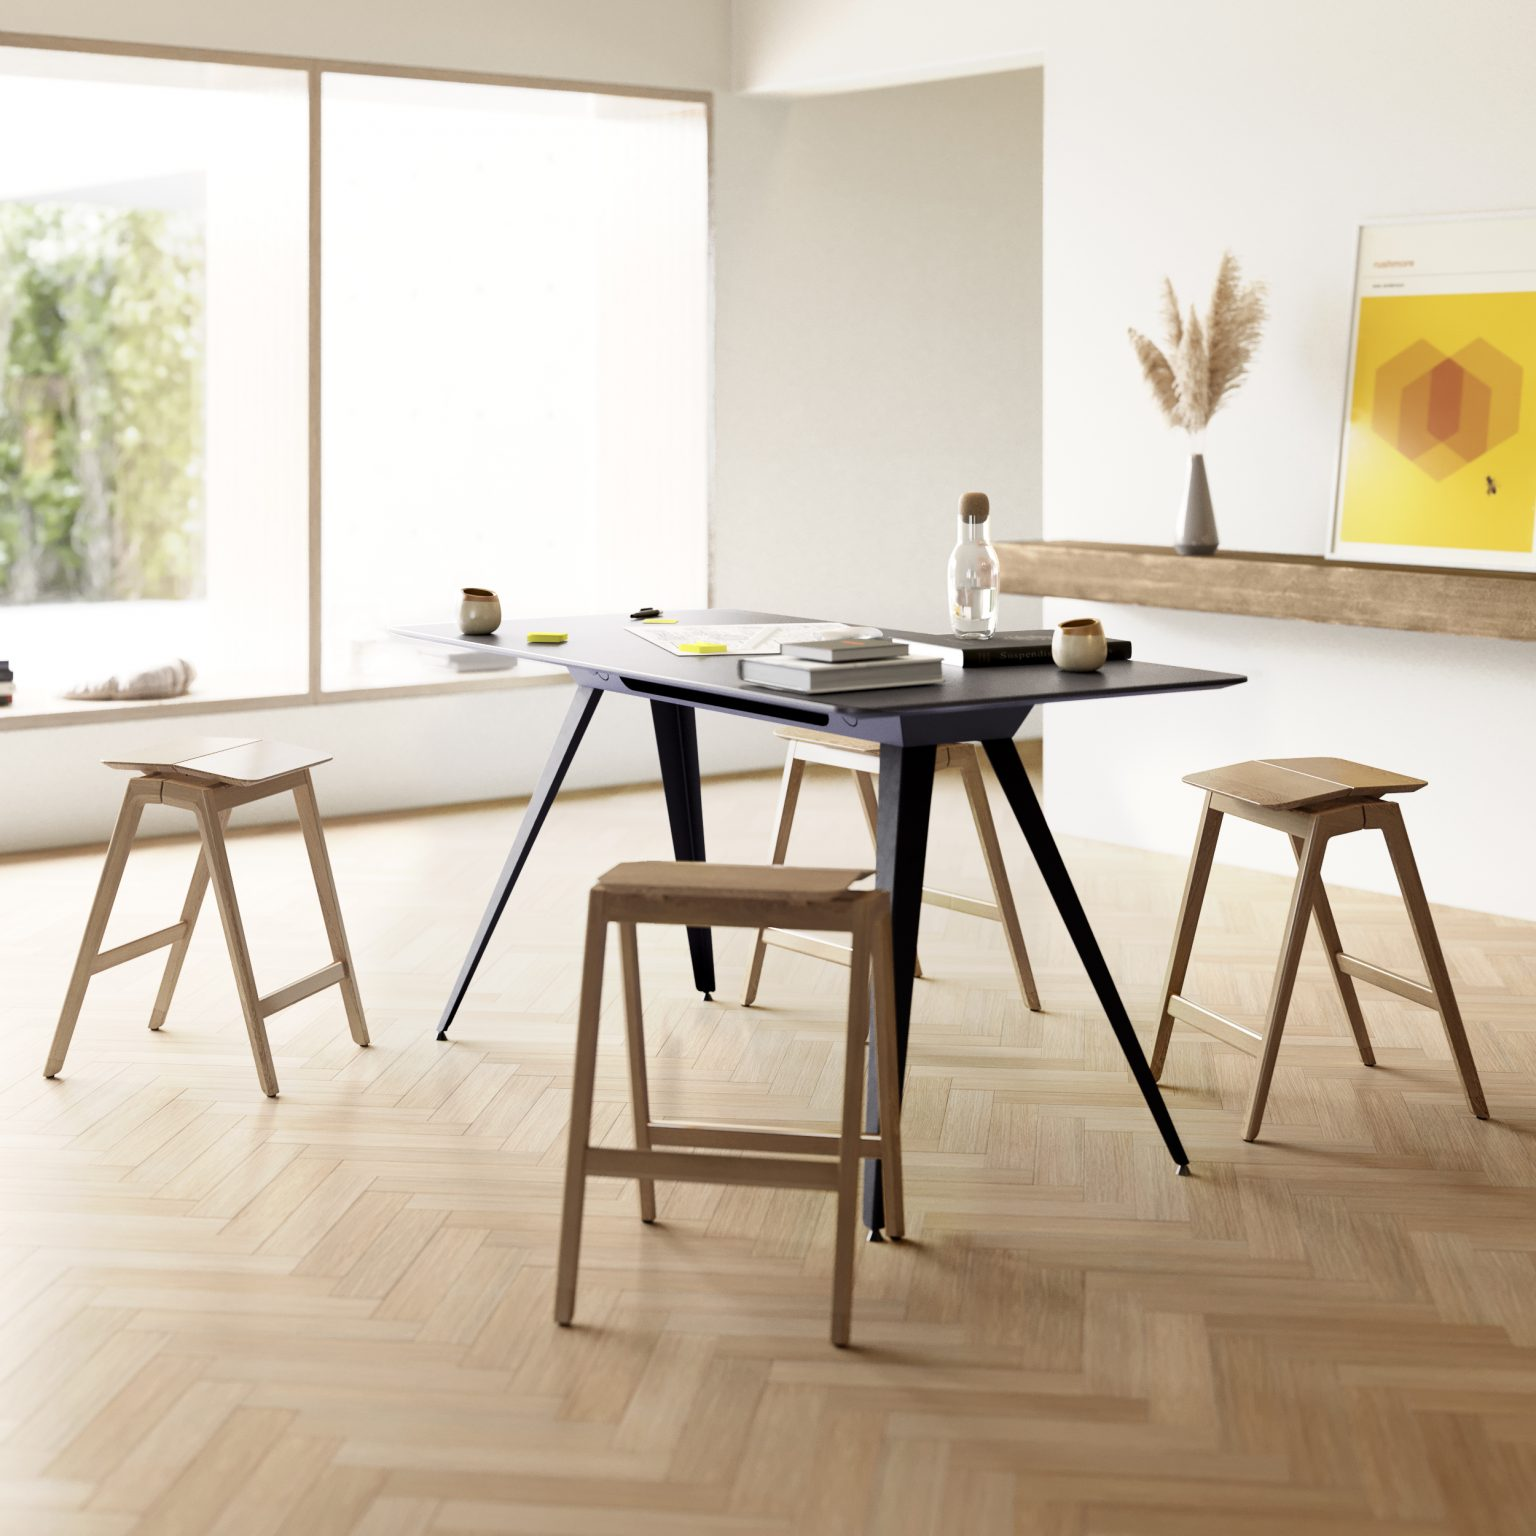 Biennale Interieur - Belgium's leading design and interior event - Knekk-stools-and-table-in-a-creative-workspace-from-fora-form.jpg